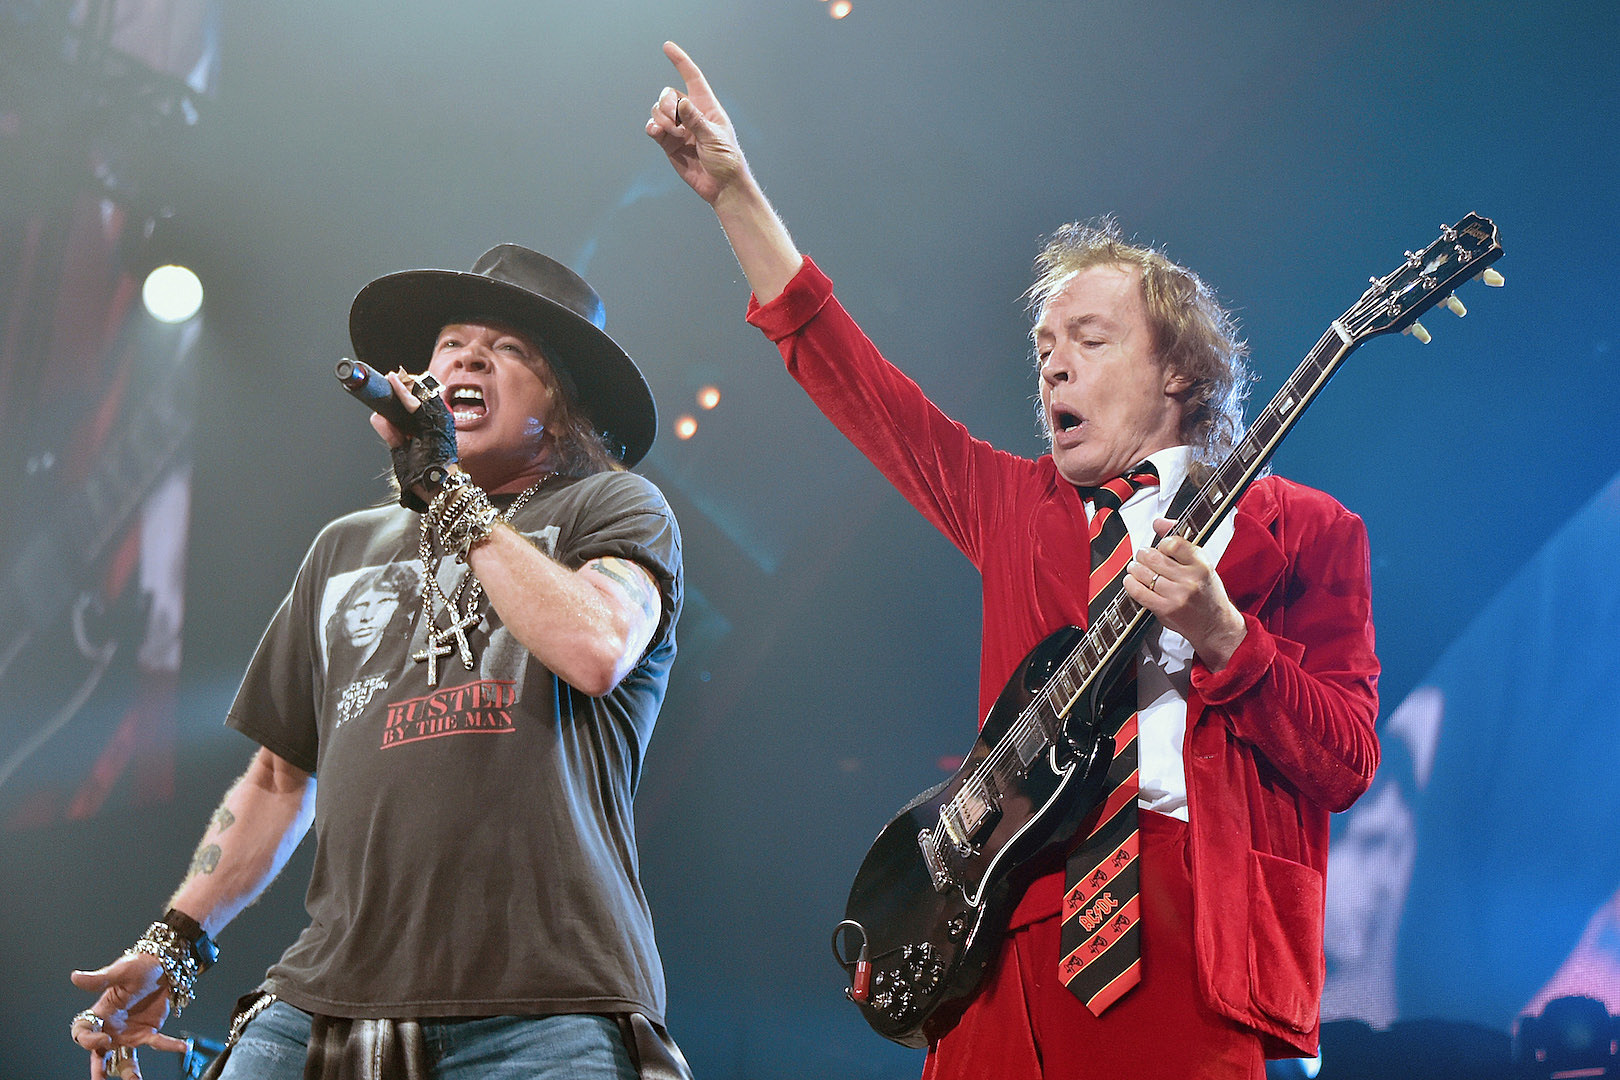 Angus Young Writing New AC/DC Album With Axl Rose Says Rose Tattoo Frontman